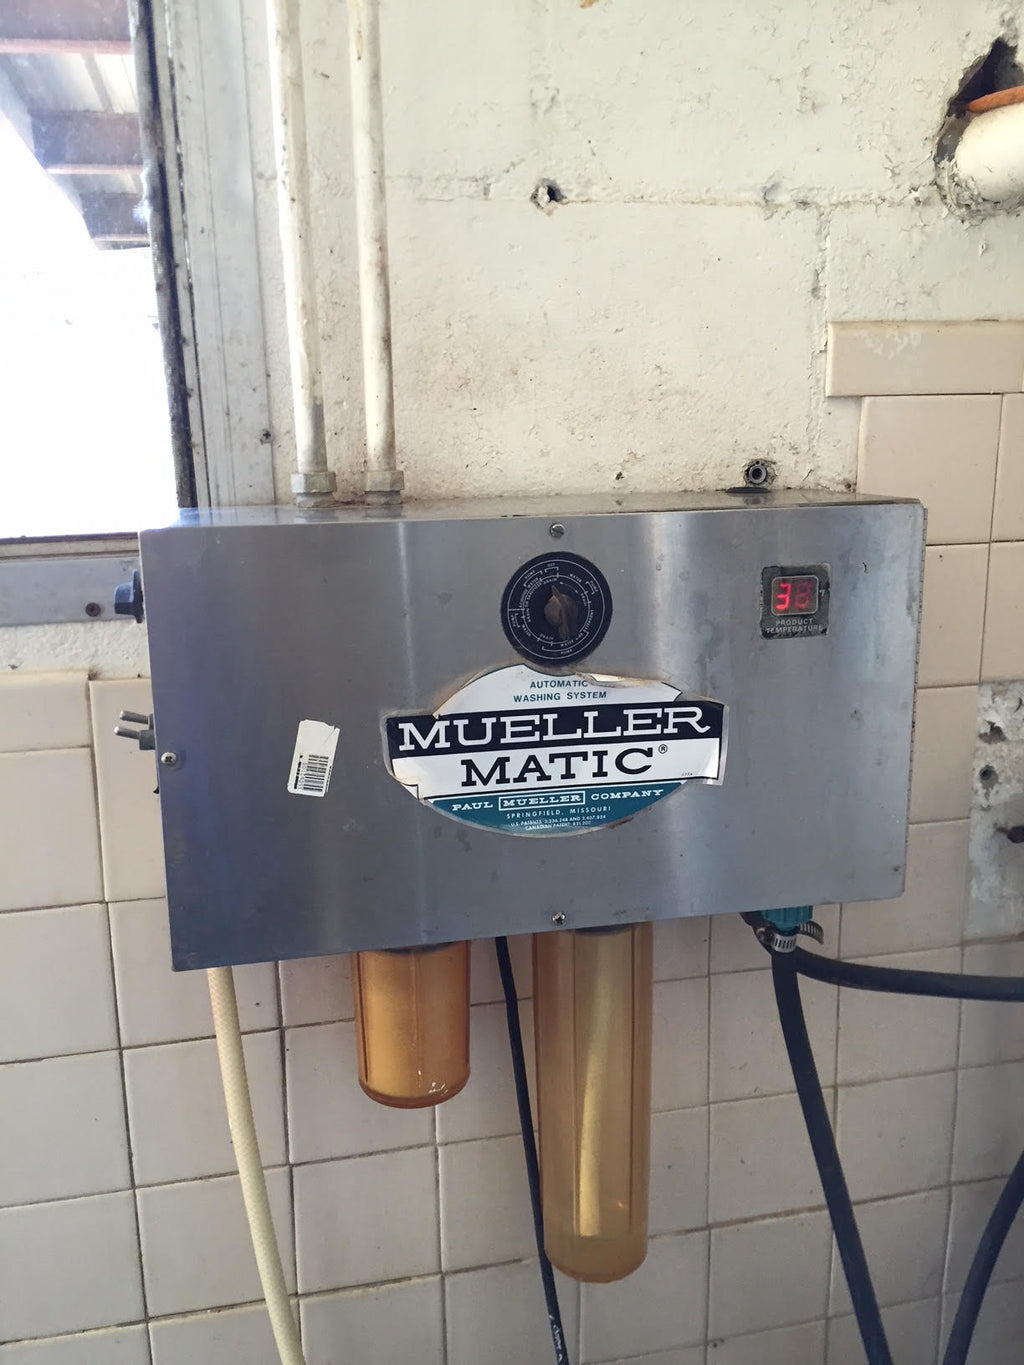 #DD1669 - Mueller Matic 1500 gallon bulk tank and compressors